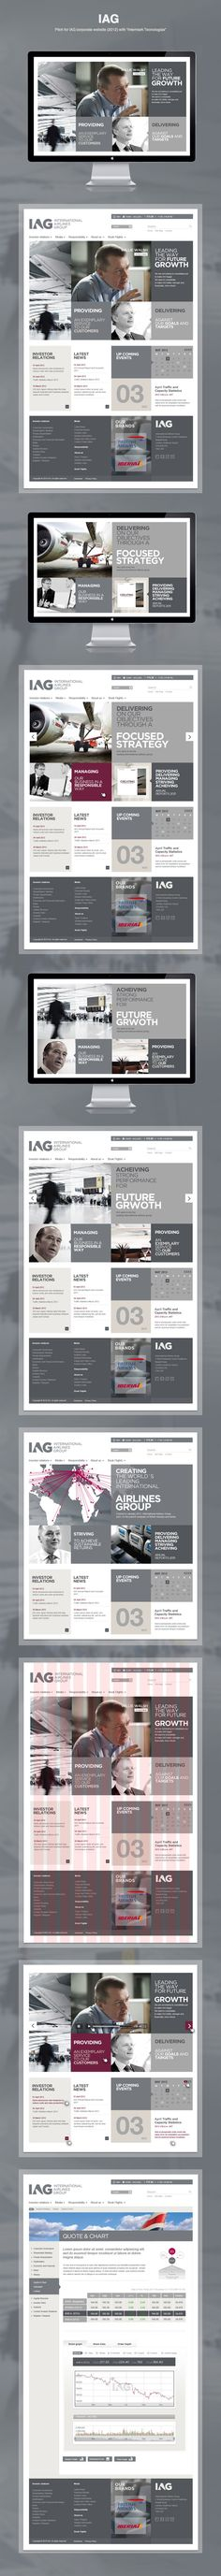 "IAG by Yan Duffield, via Behance *** ""Pitch for IAG corporate website (2012)…"